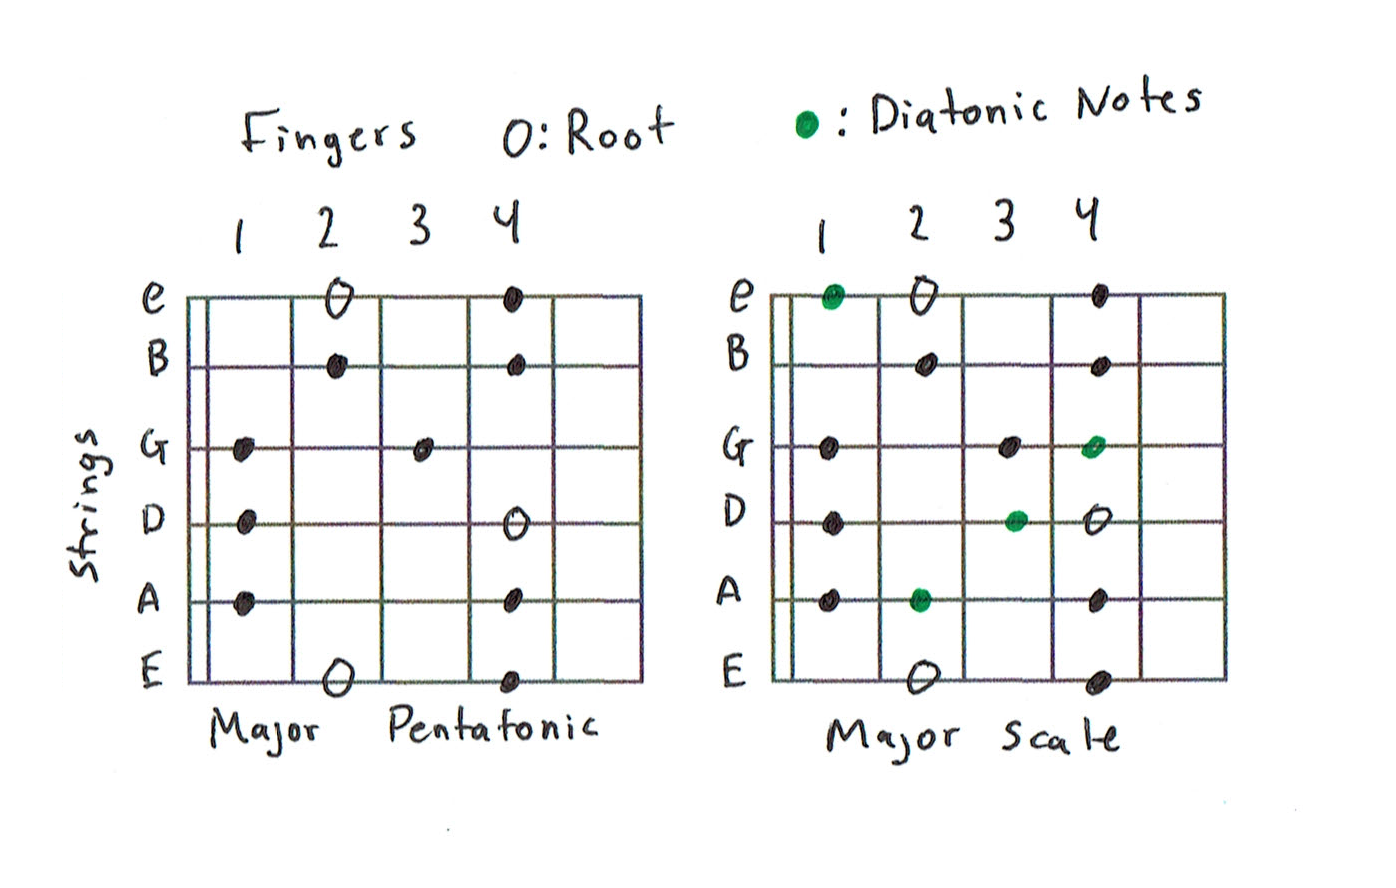 Guitar Scales 101 Mastering The Lead How To Read Chart Chord Diagram Major Vs Pentatonic Scale